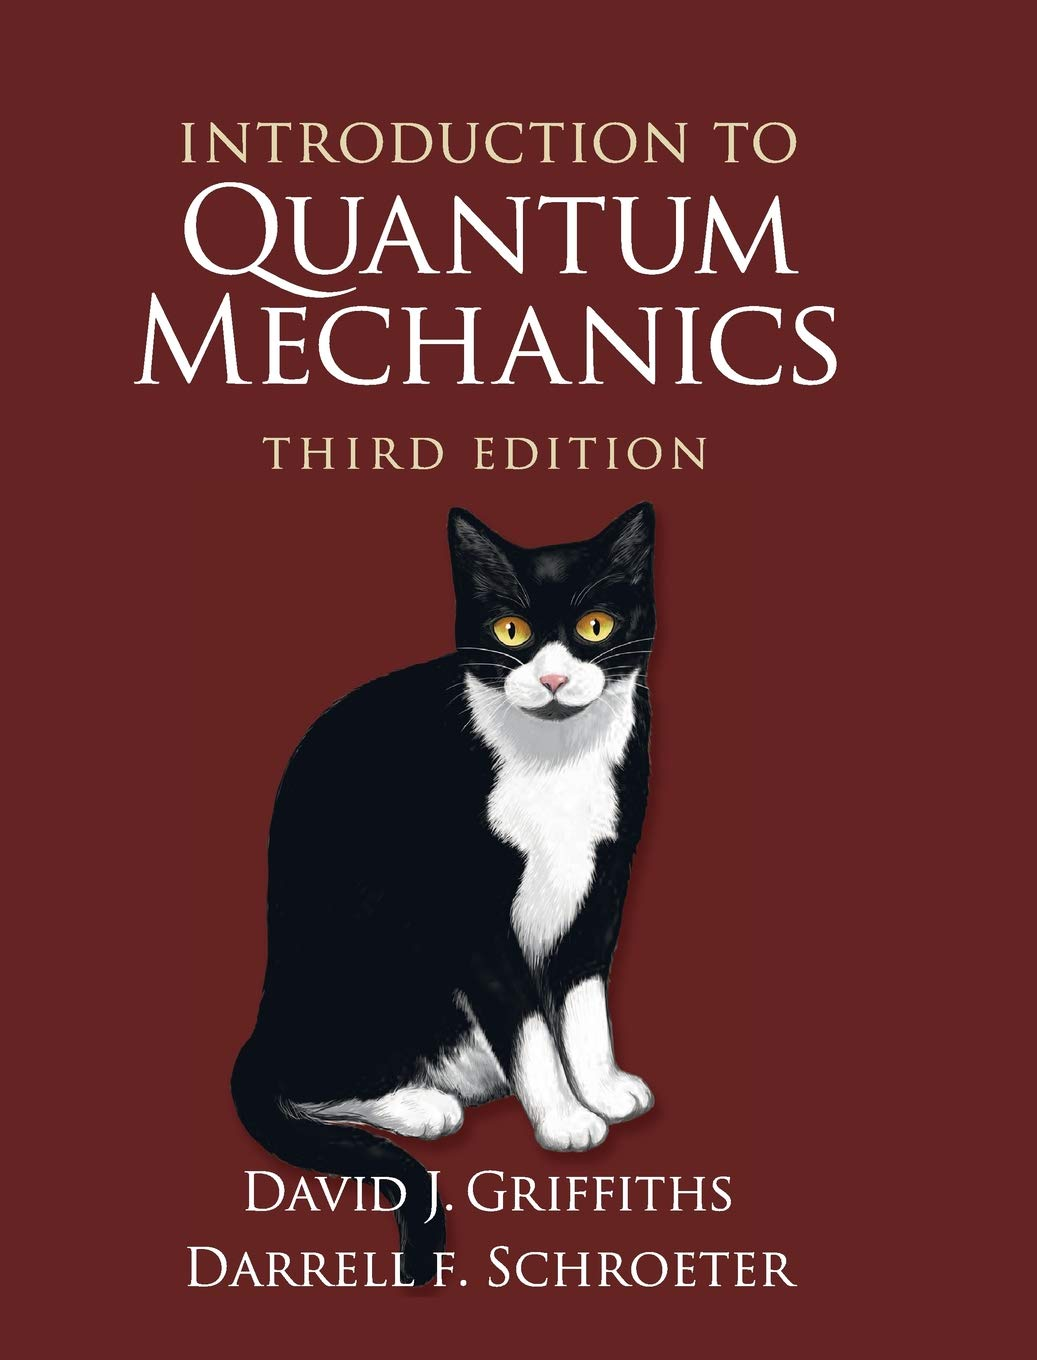 Introduction to Quantum Mechanics by Cambridge University Press